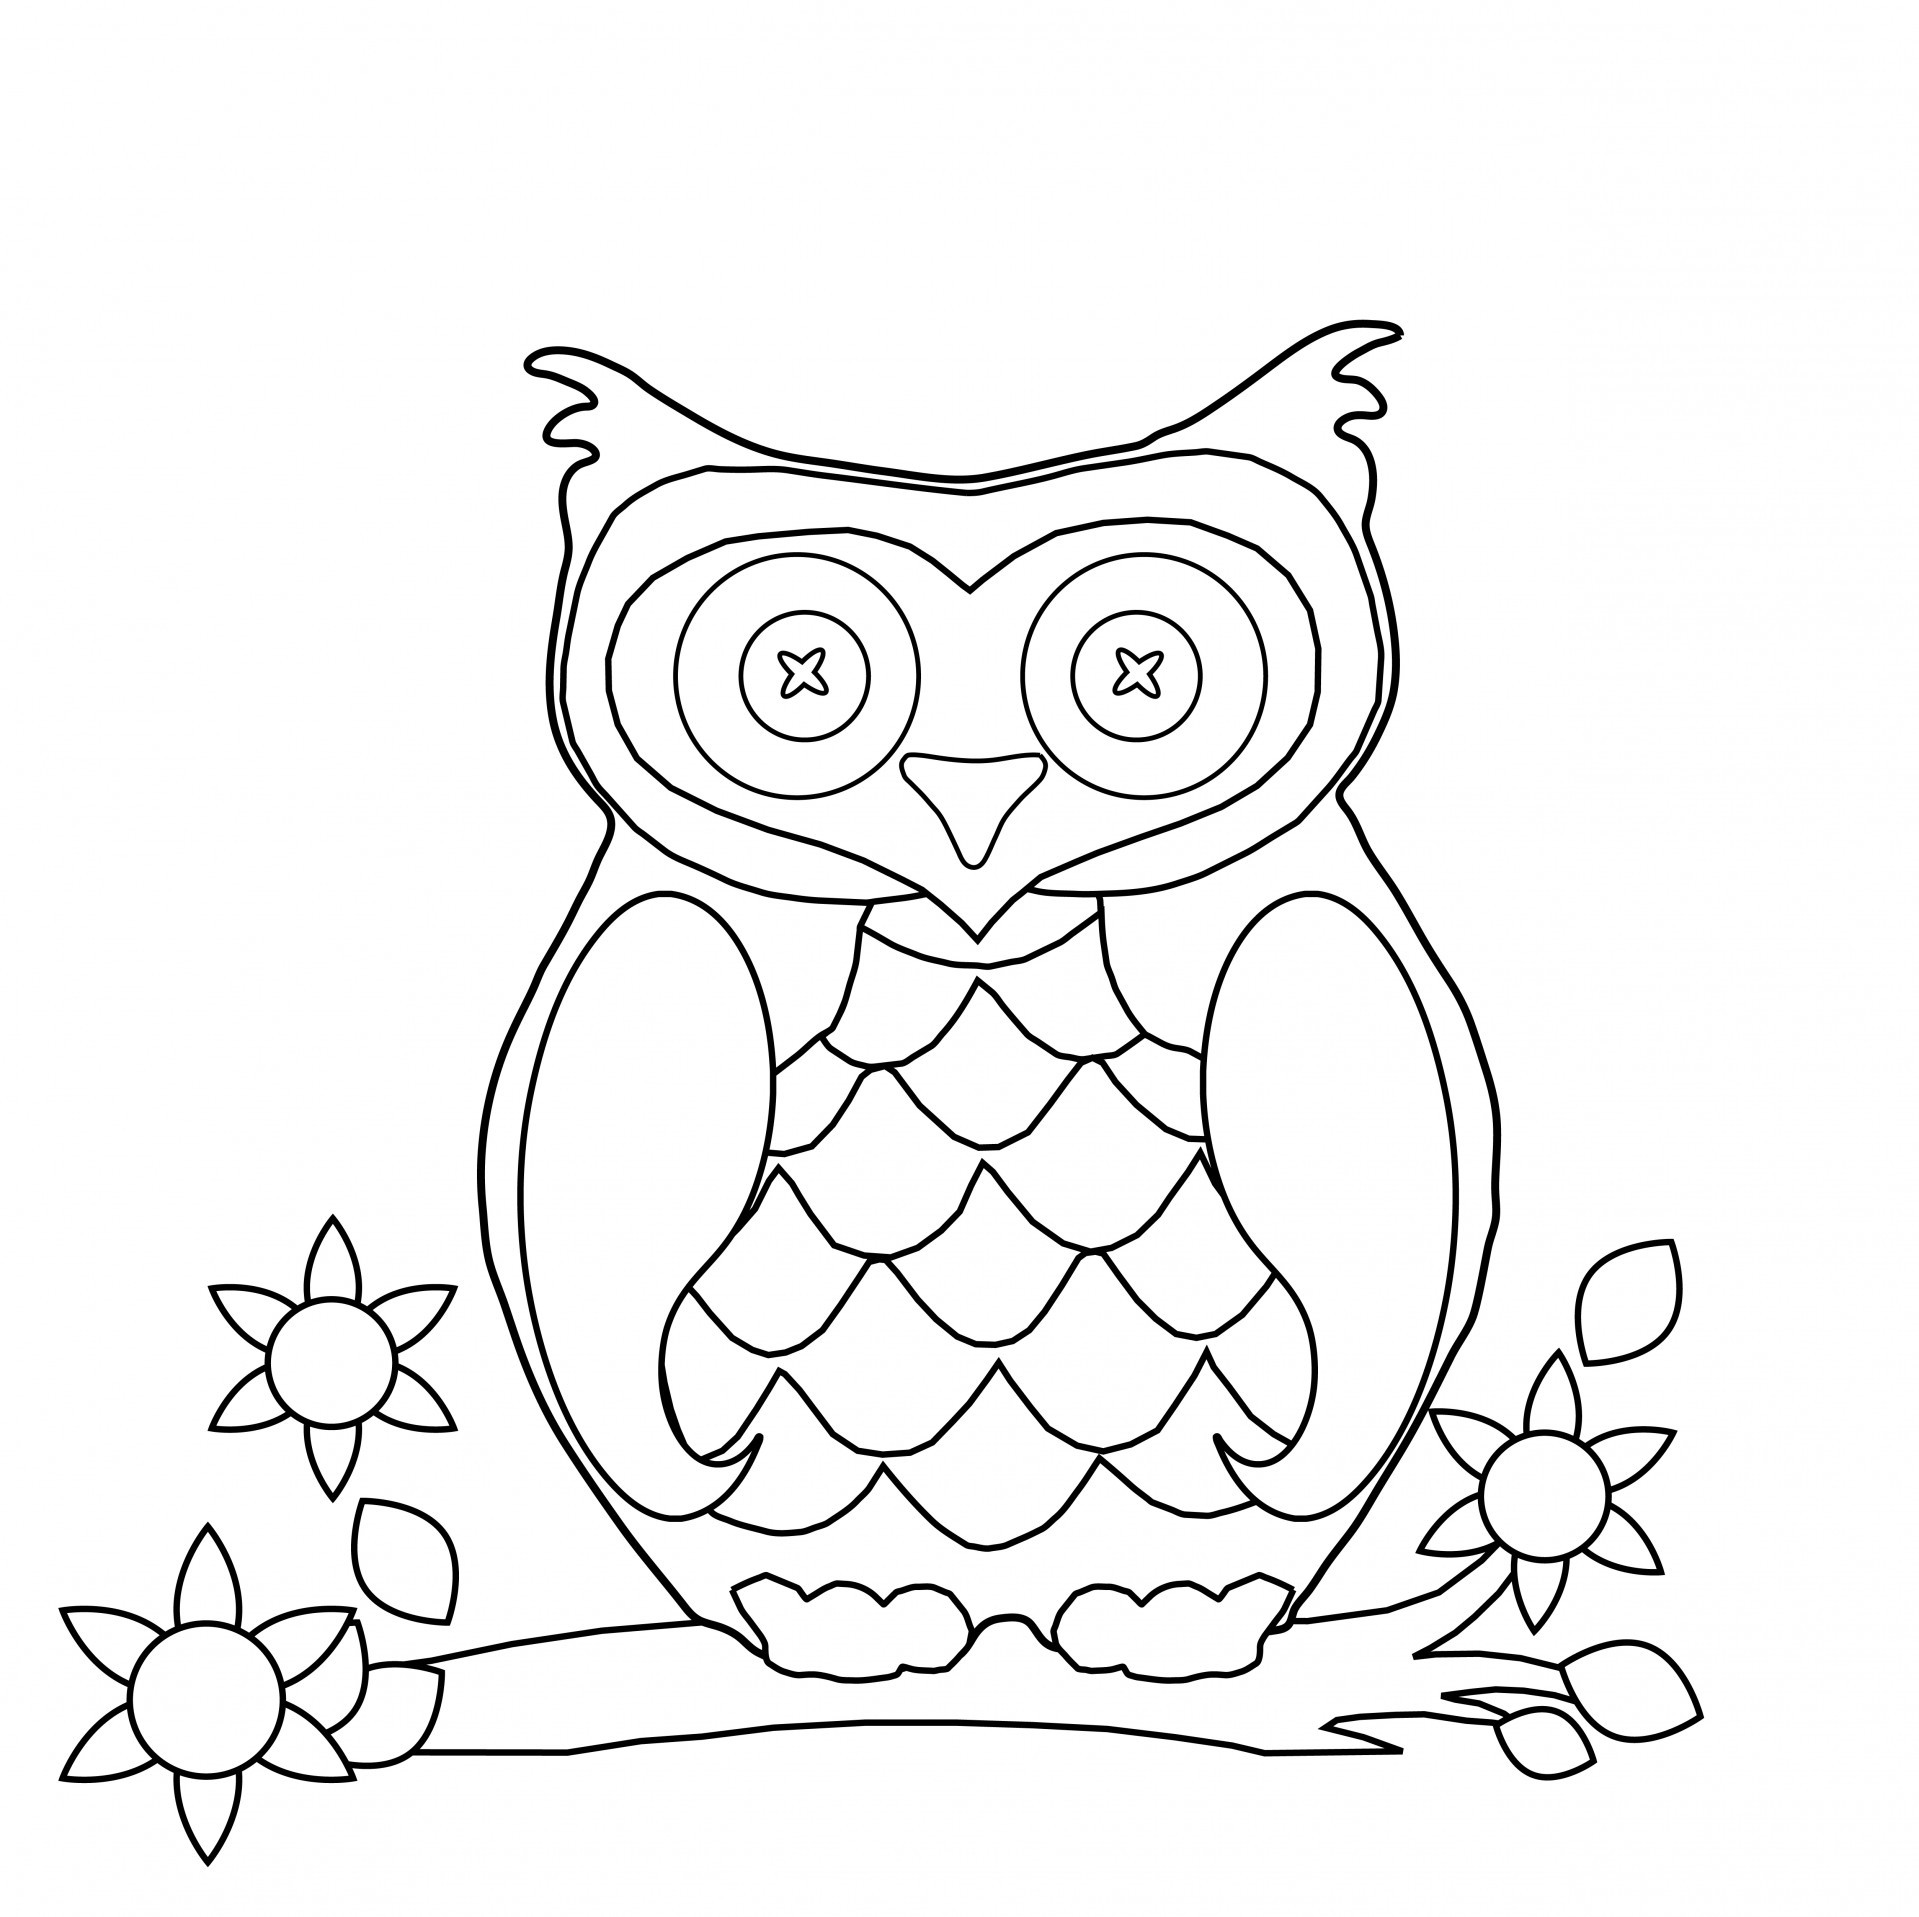 1919x1917 Unique Owl Coloring Pages Showy For Adults Abstract Owls